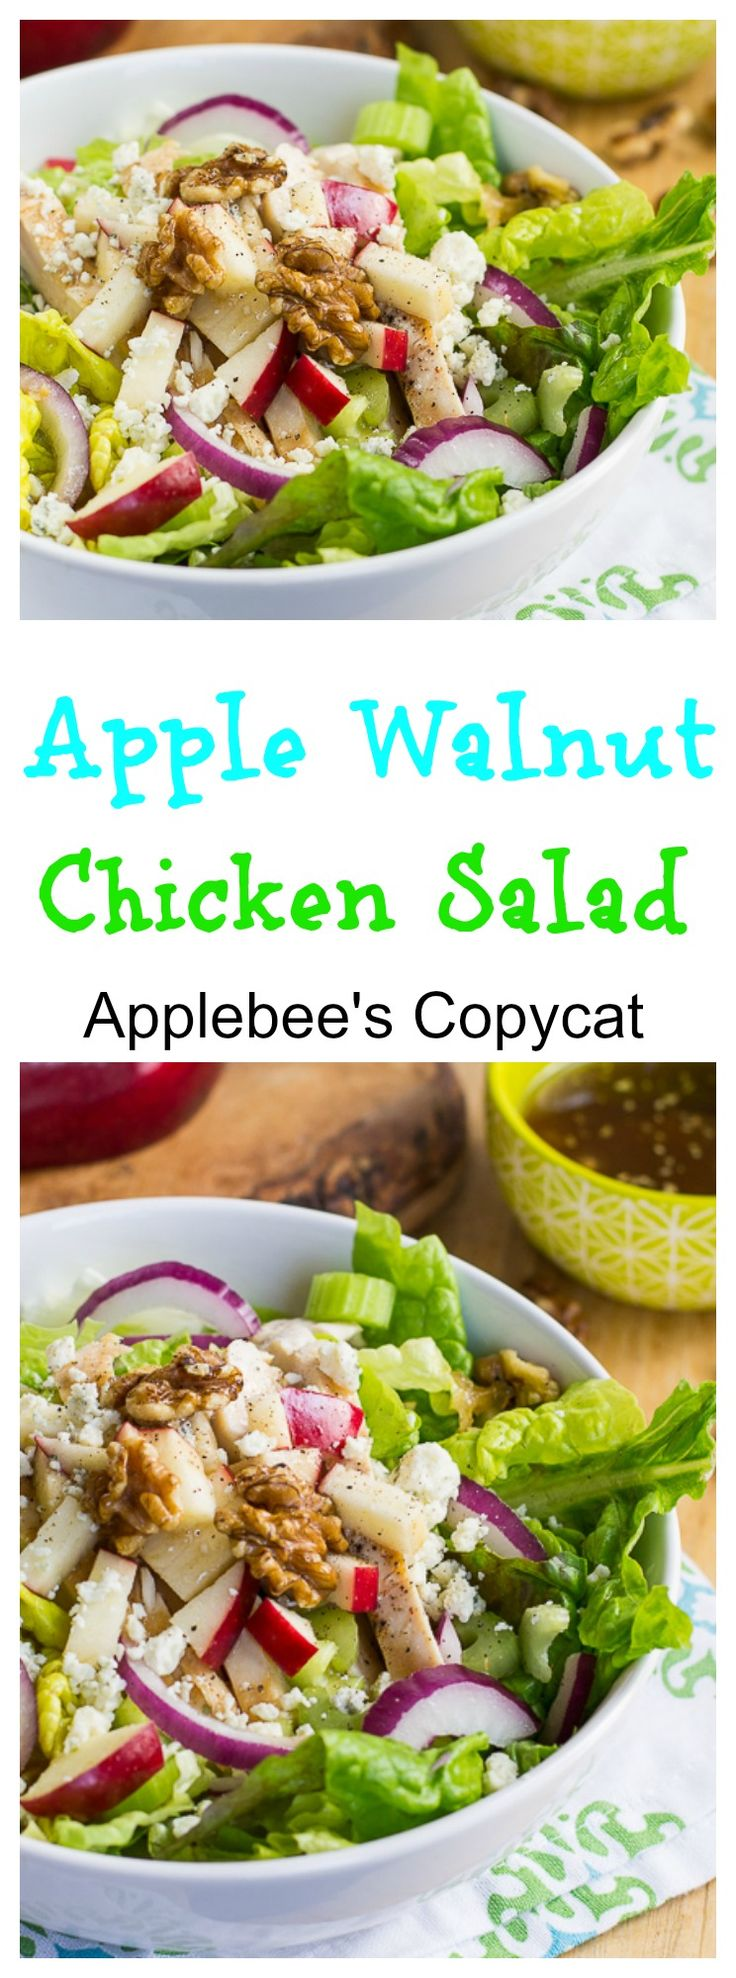 ... Apple Walnut Salad on Pinterest | Blue Apron Reviews, Walnut Salad and